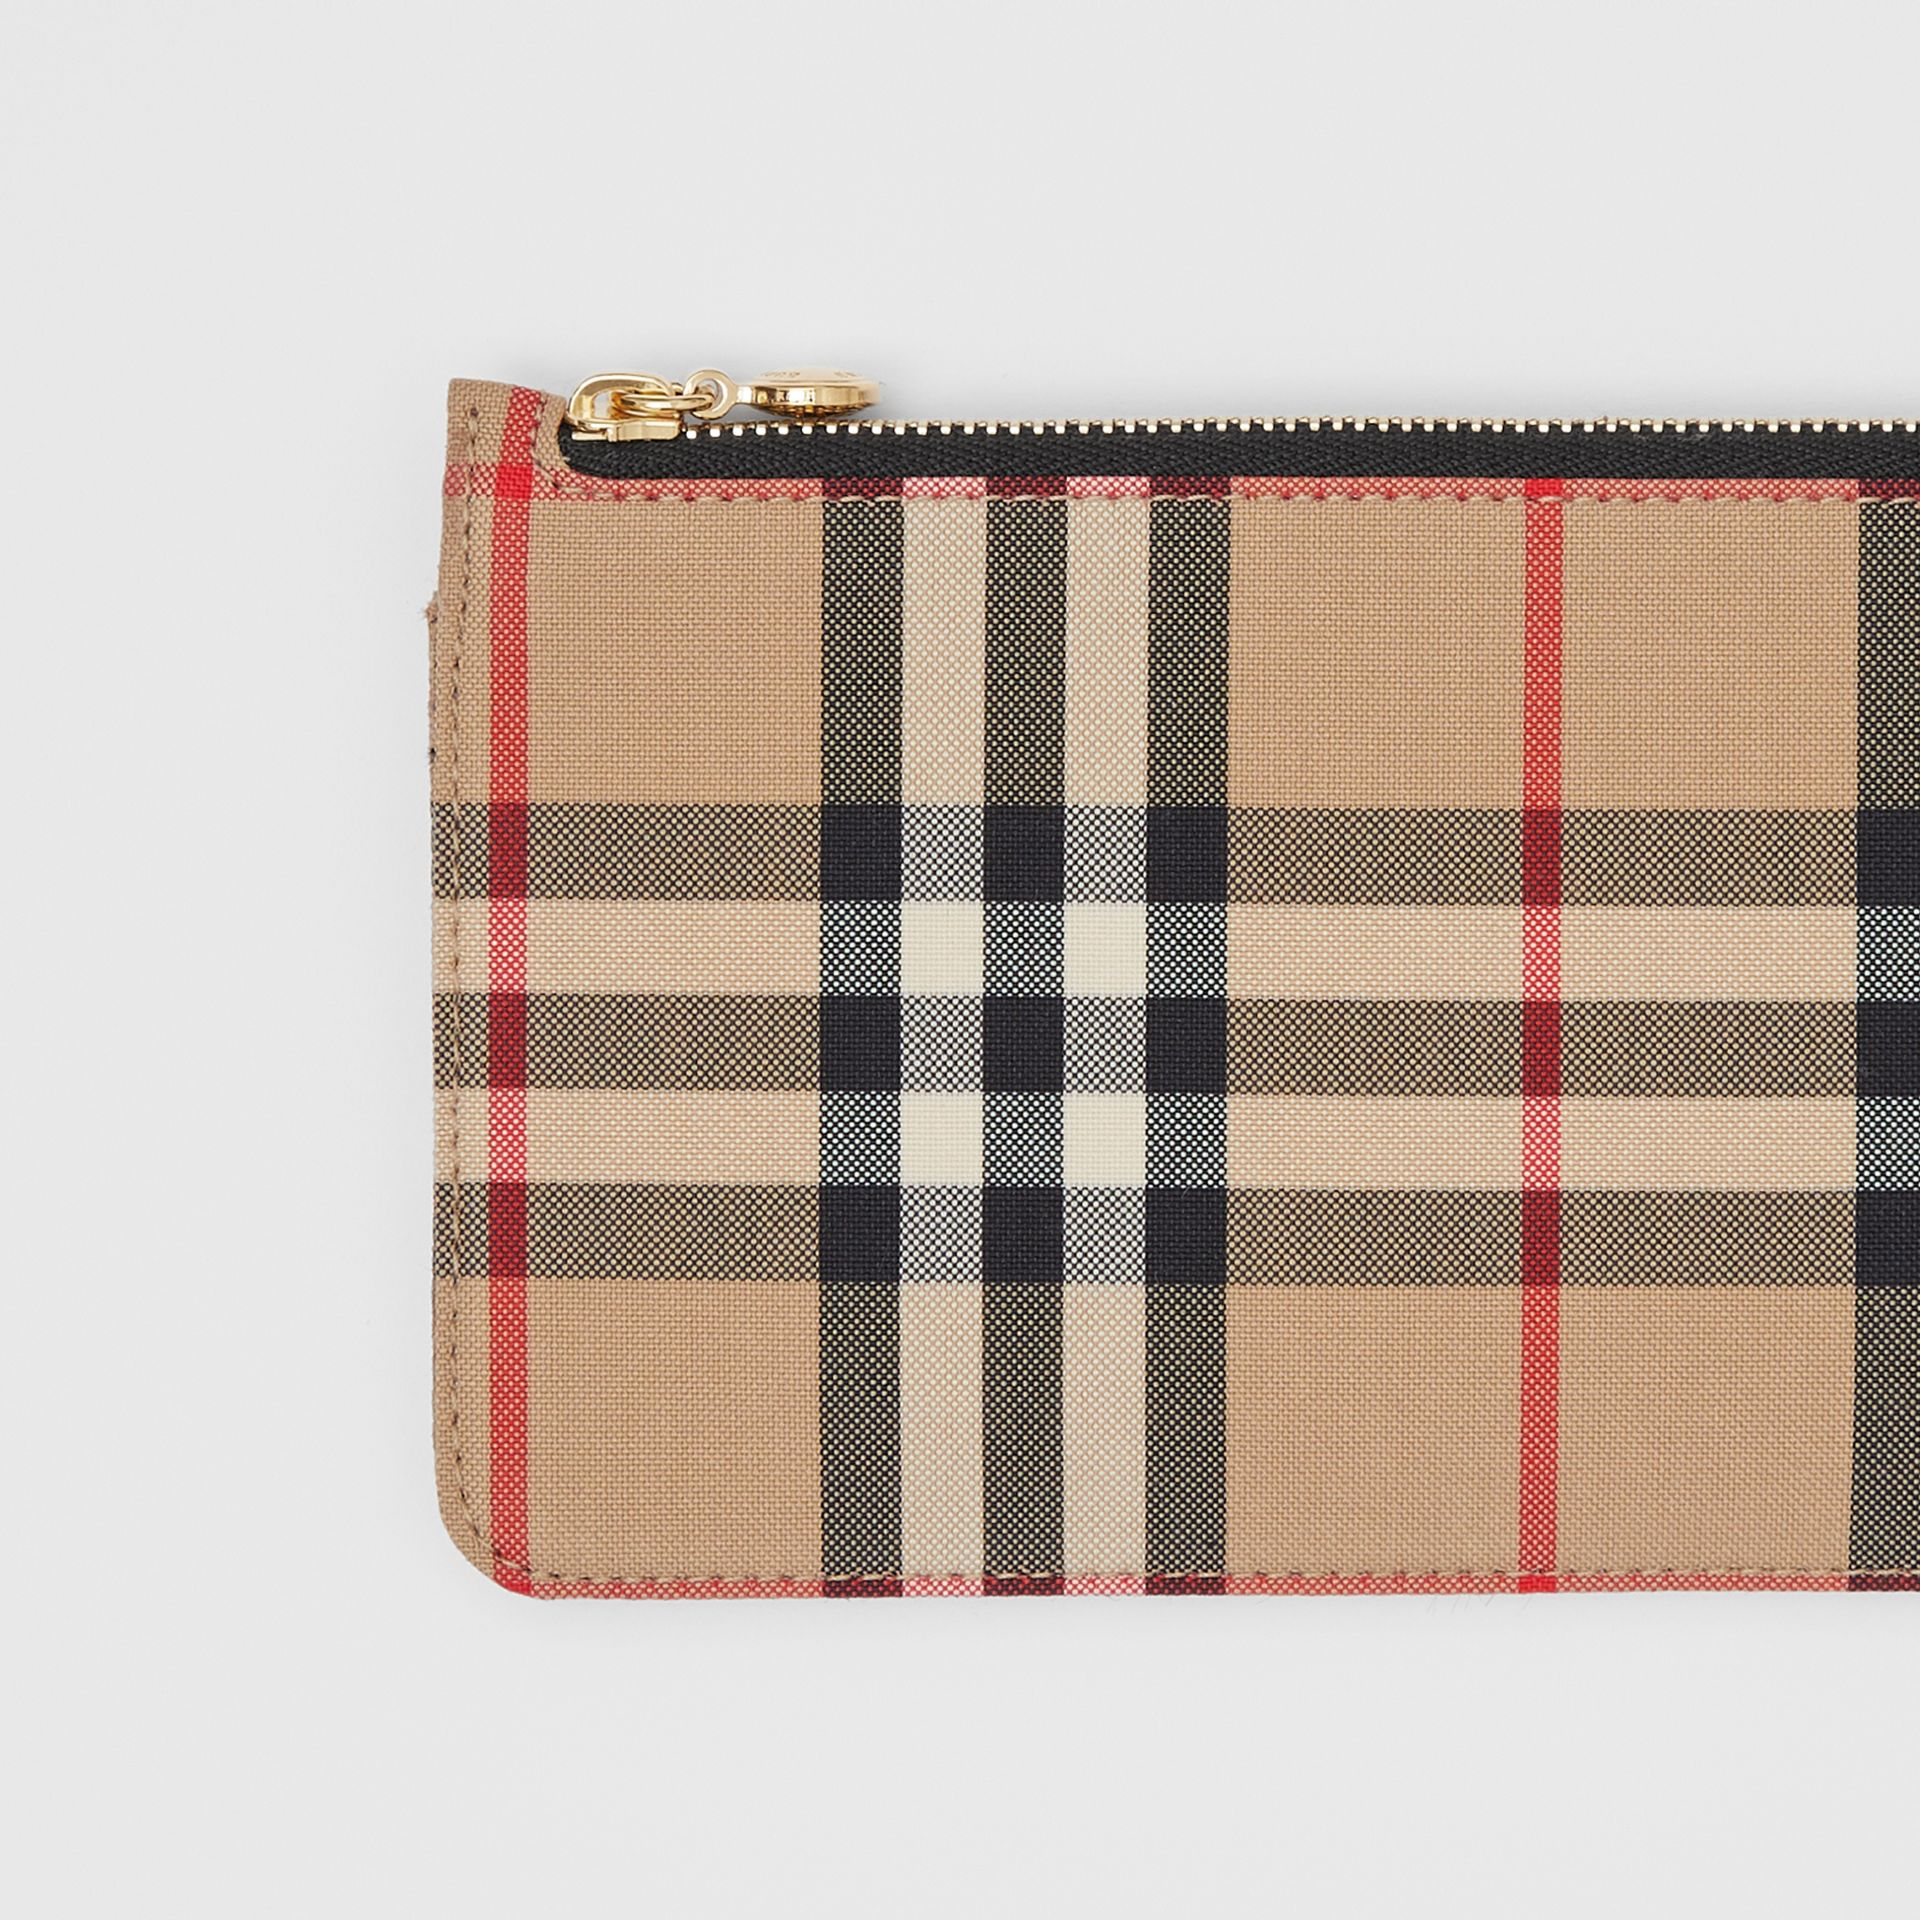 Vintage Check and Leather Phone Wallet in Black - Women | Burberry - gallery image 1